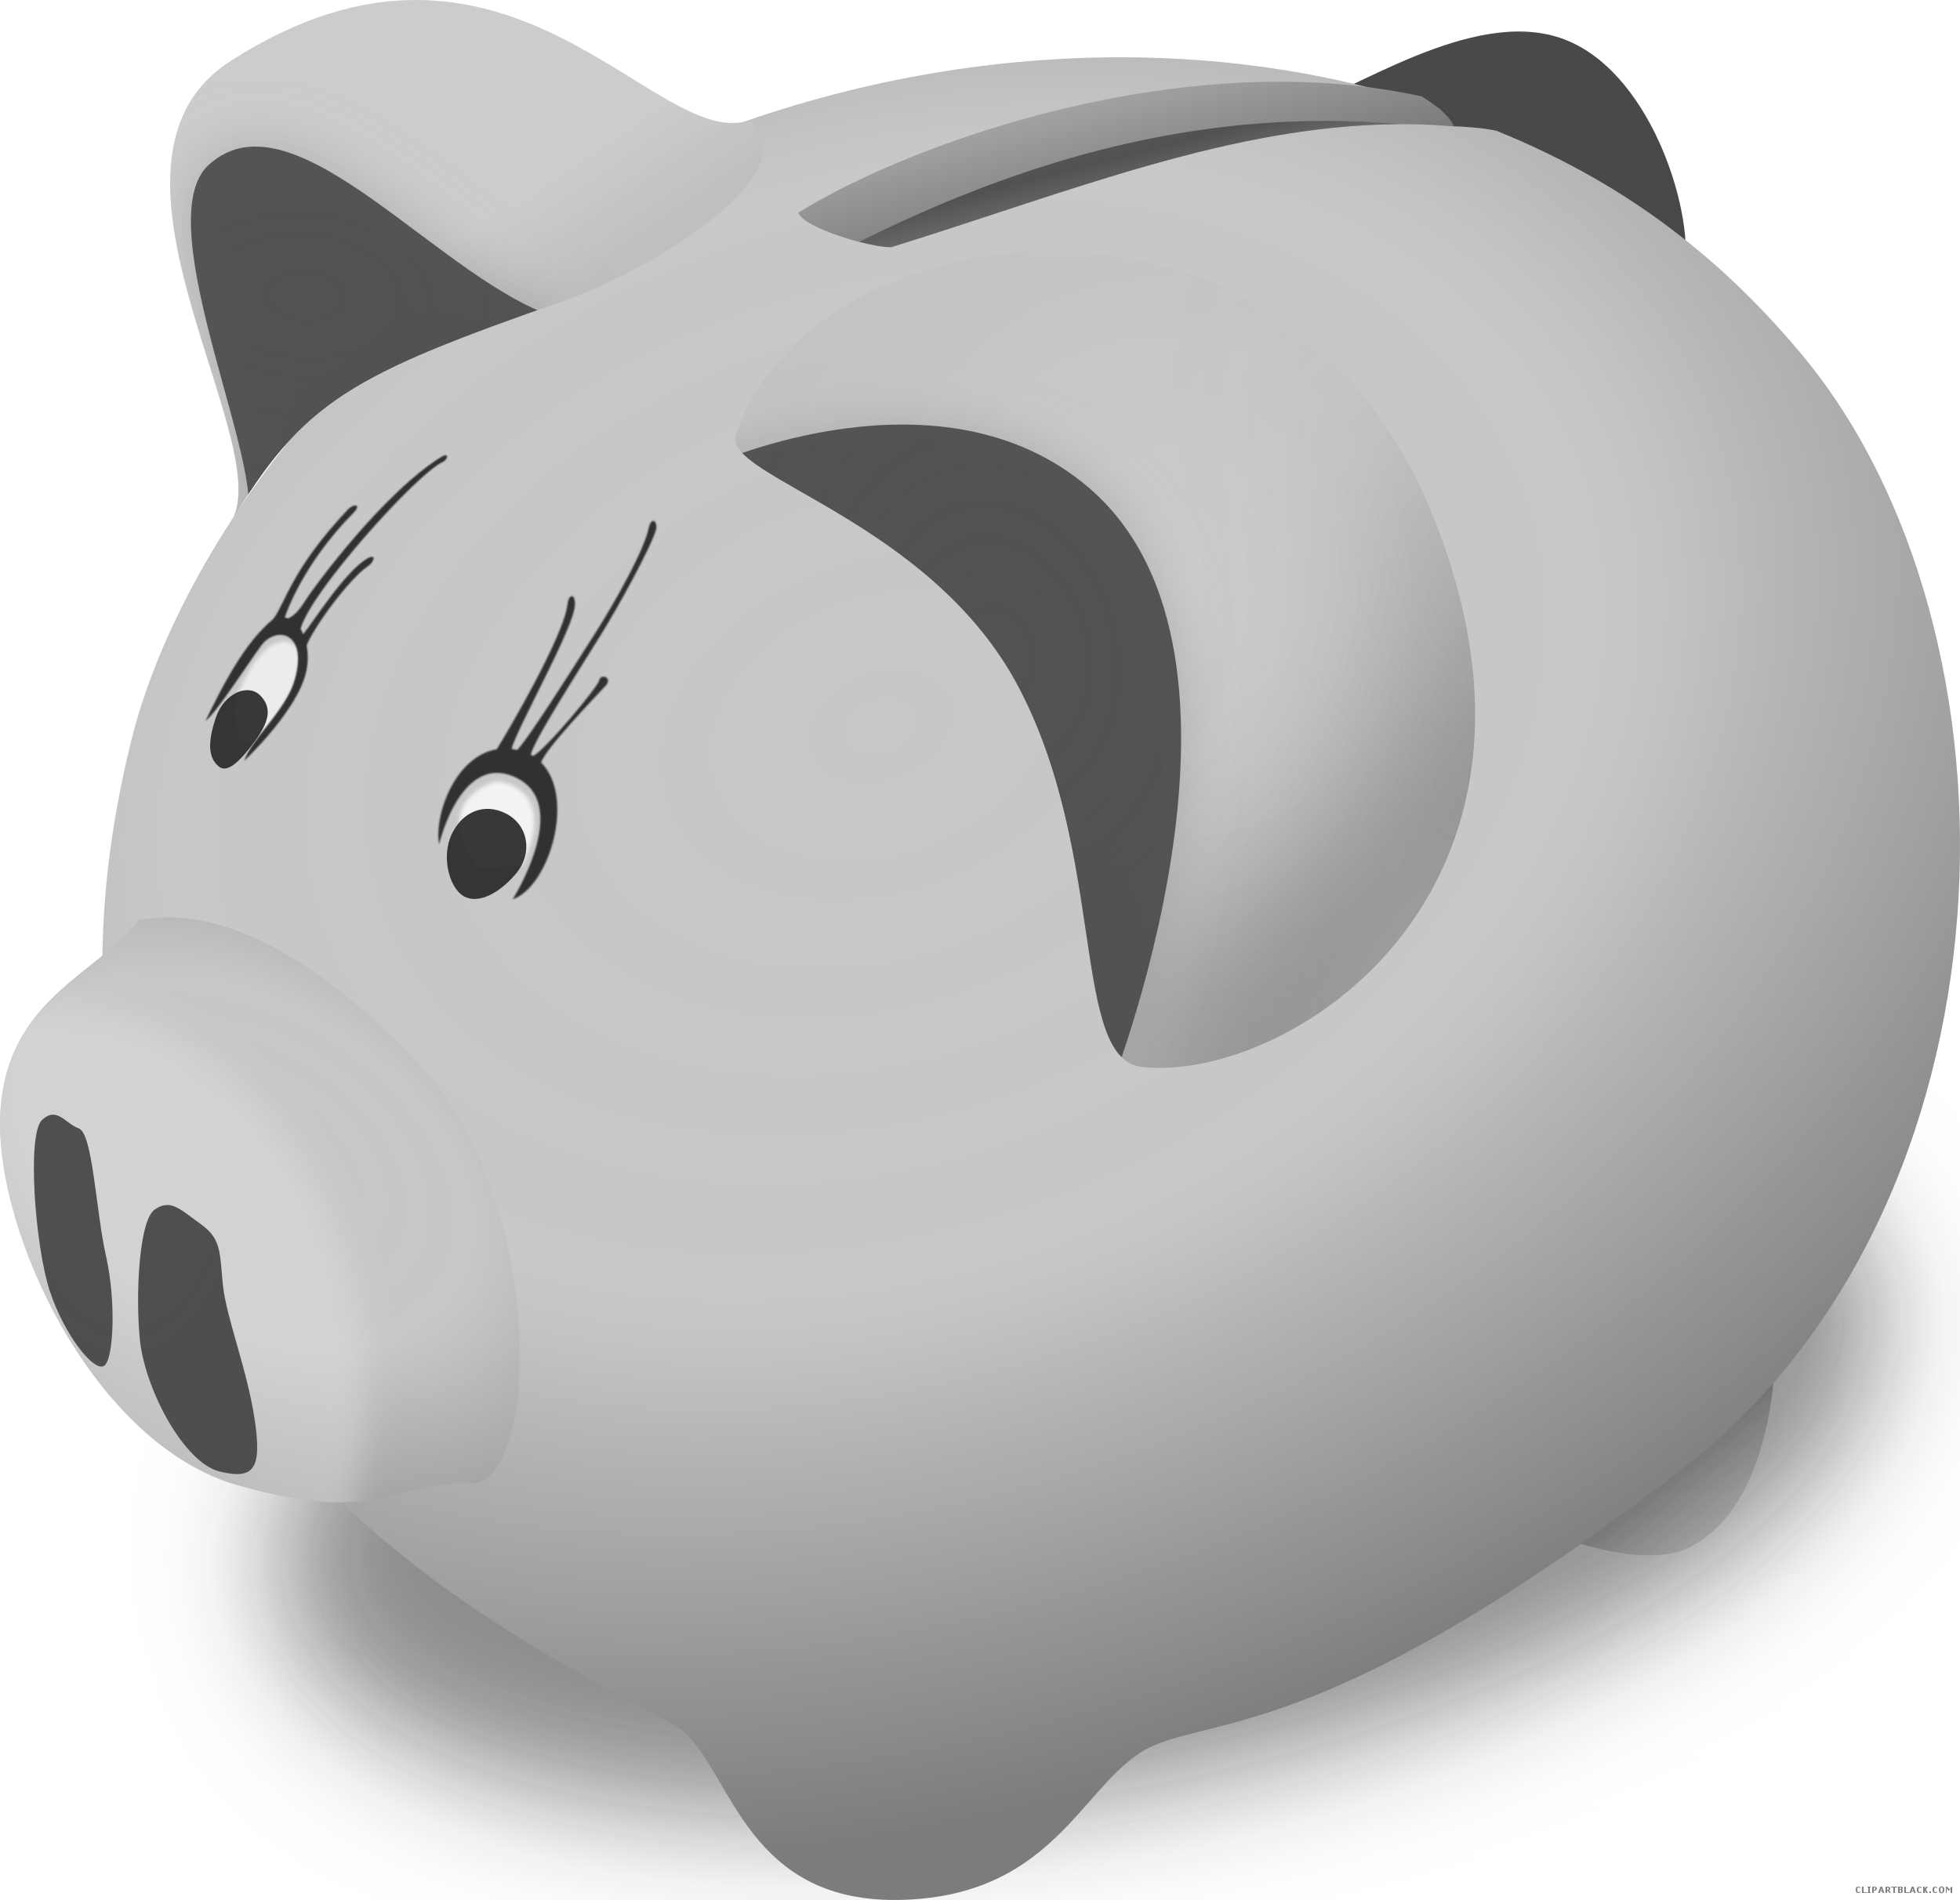 Piggy bank clipart images picture freeuse library Piggy Bank Animal free black white clipart images clipartblack ... picture freeuse library